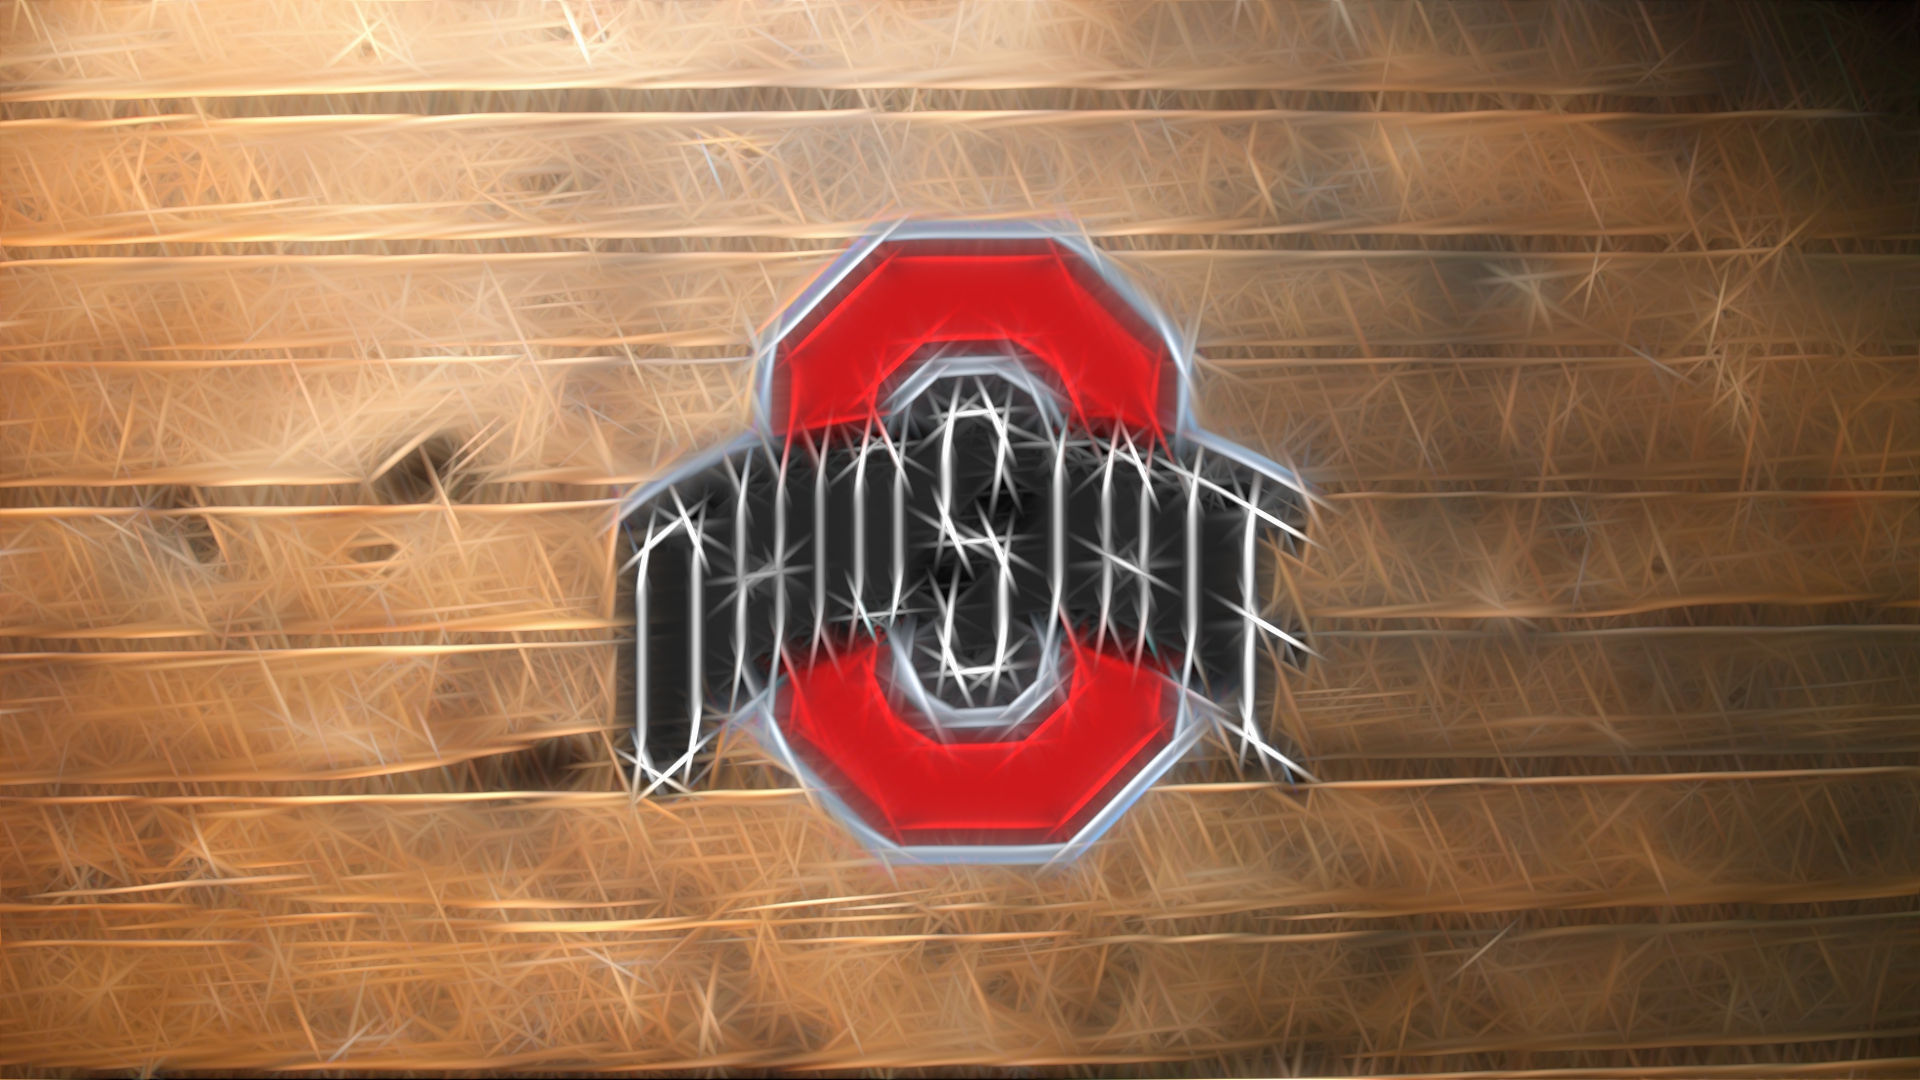 OSU Wallpaper 207   Ohio State Football Wallpaper 29089641 1920x1080